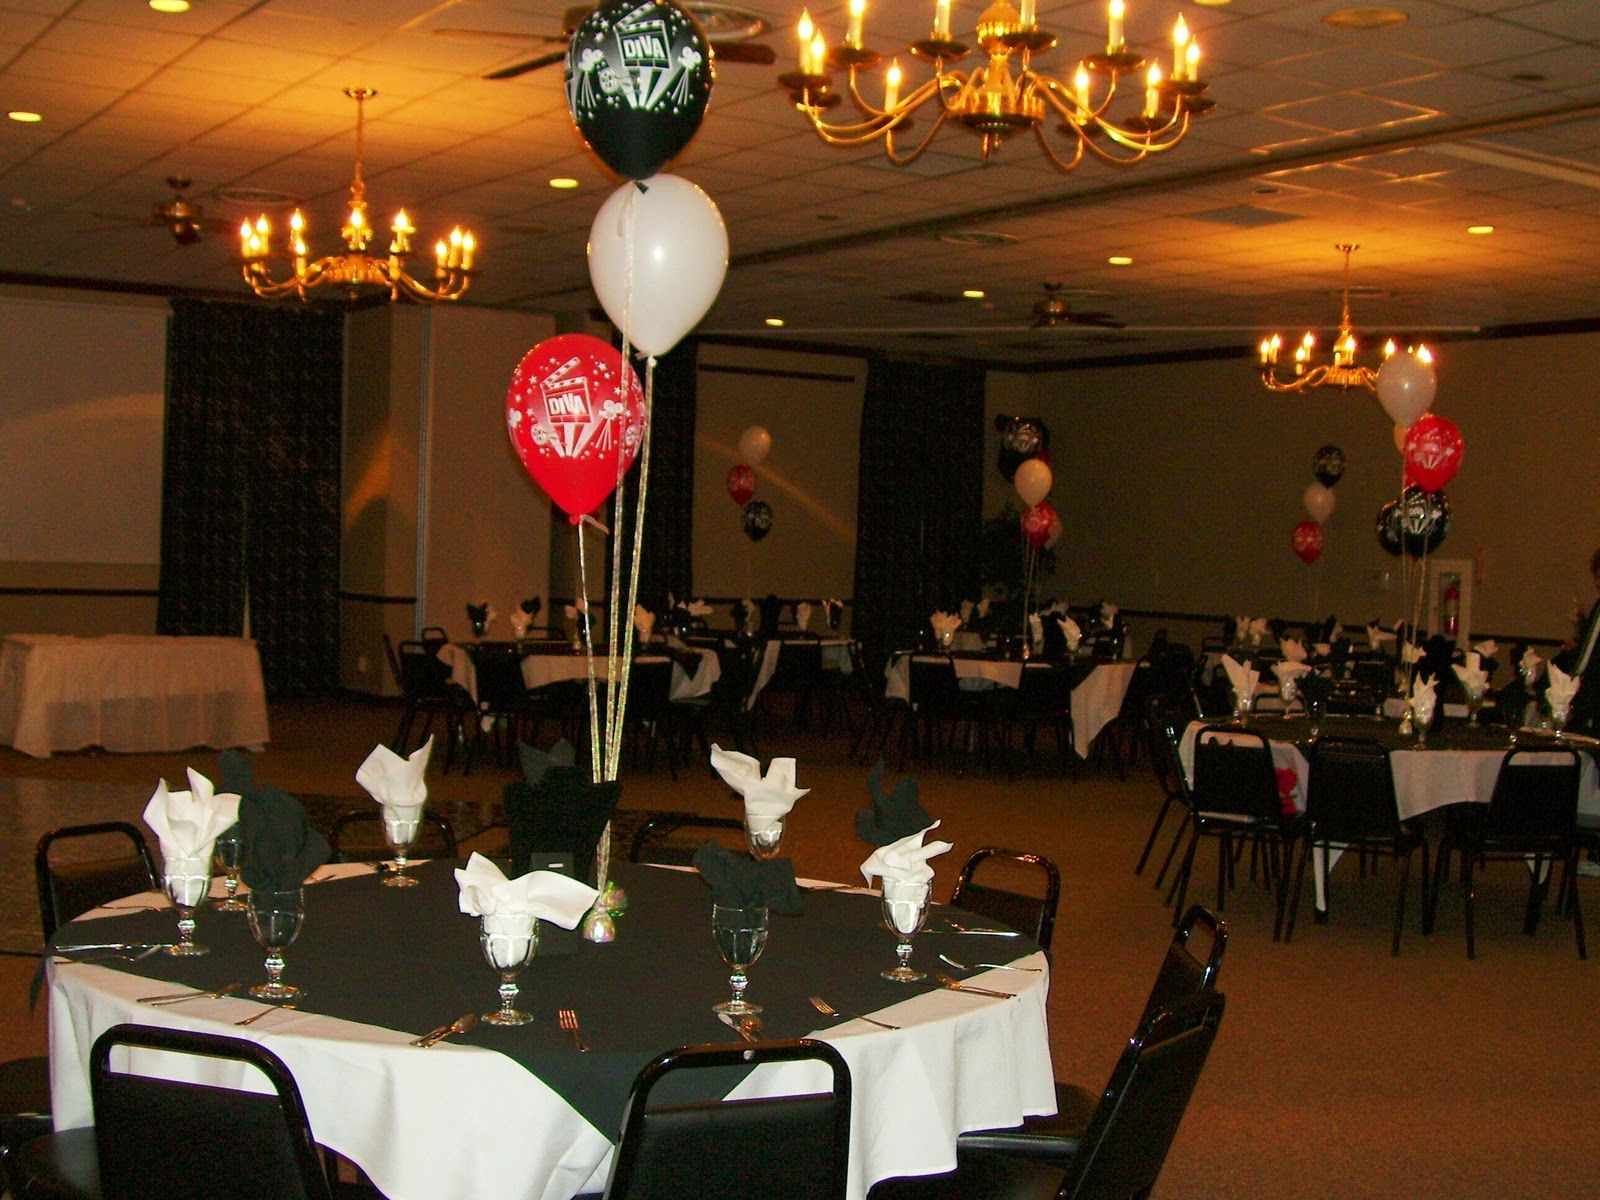 40th birthday party balloon decorations | centerpiece | pinterest